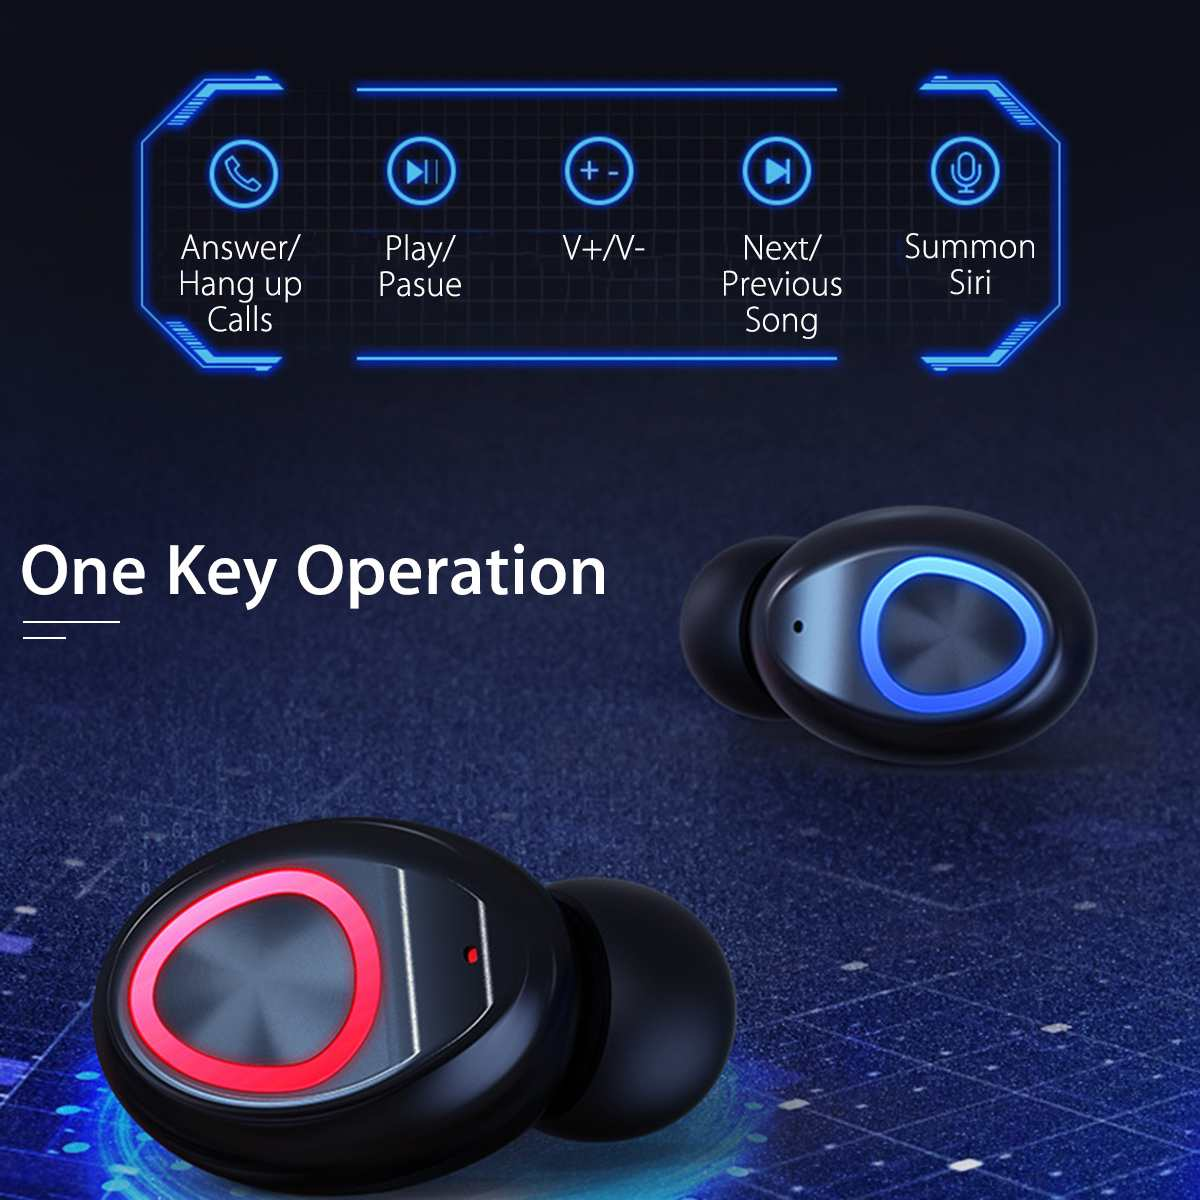 TWS True Wireless Earbuds Bluetooth V5.0 4000mAh Waterproof Active Noise-Cancellation 3